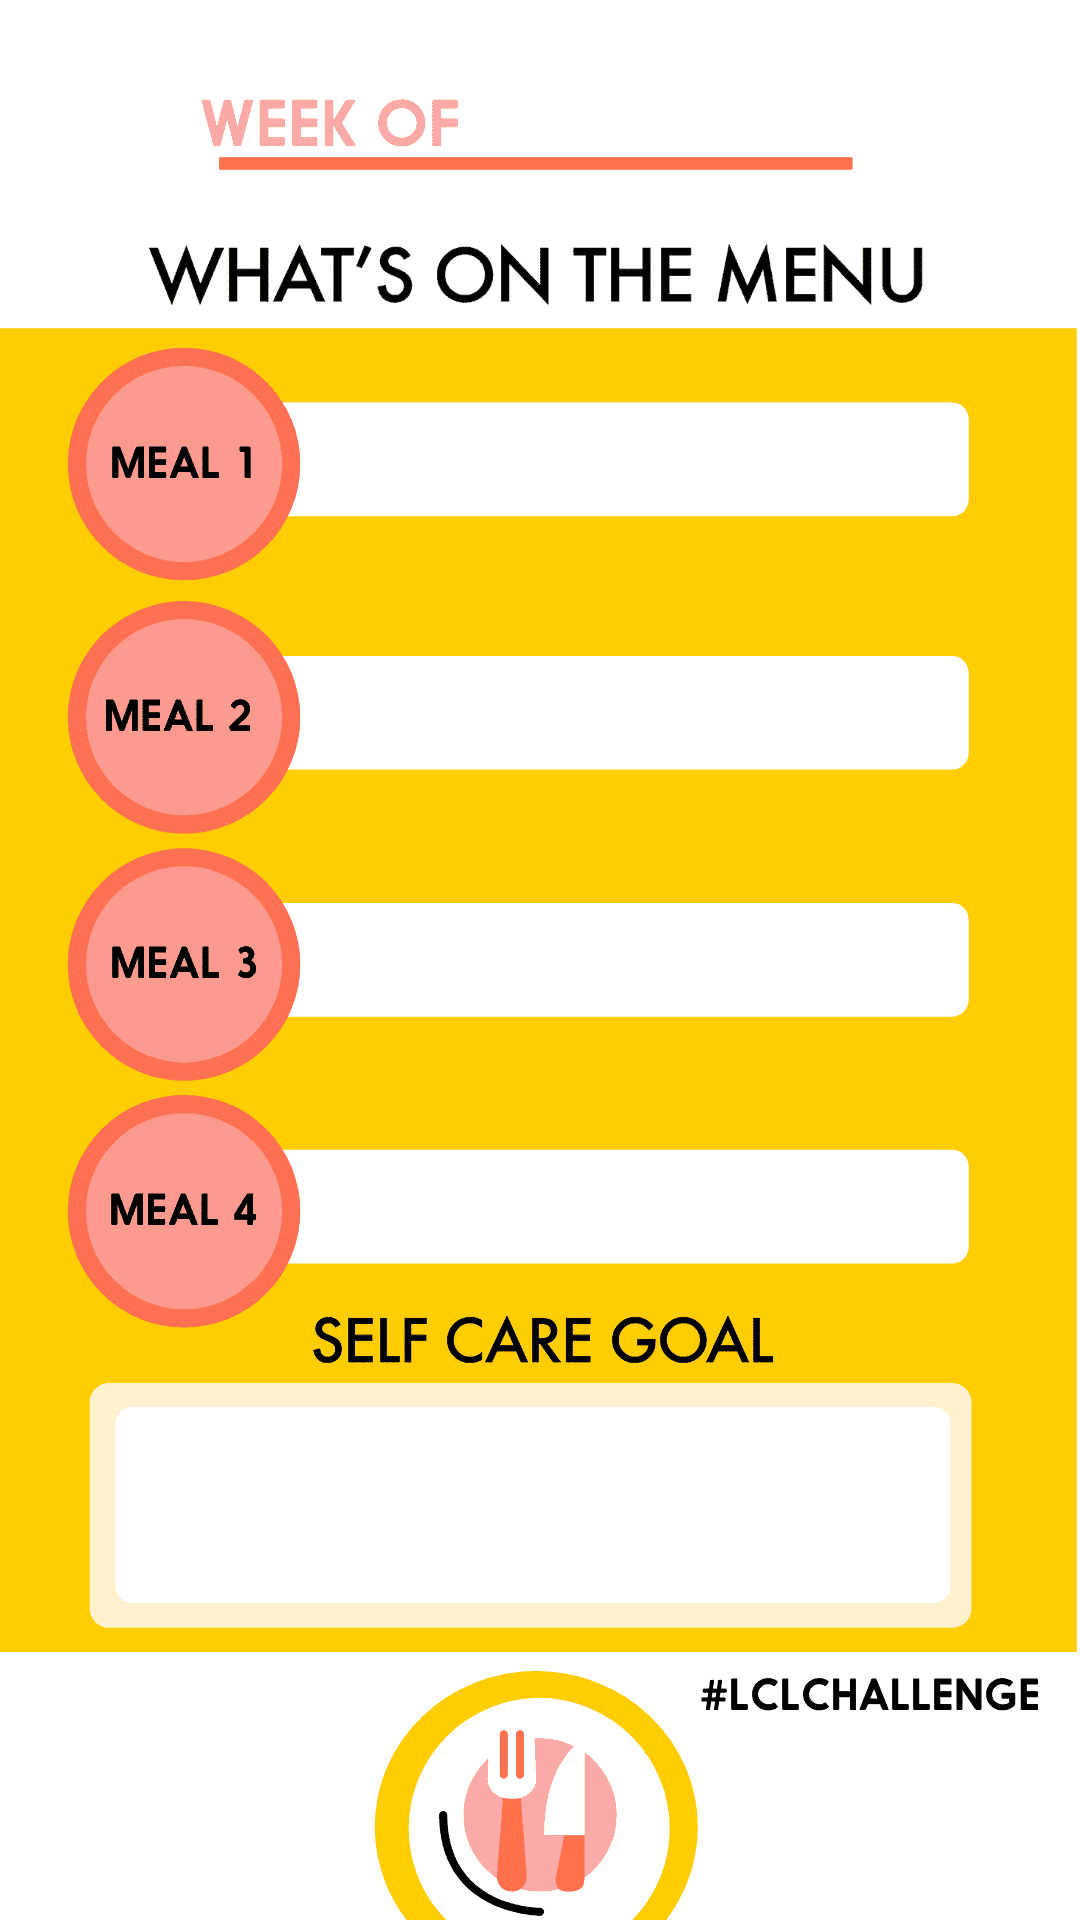 January Meal Planning Challenge Instagram Story TemplateJanuary Meal Planning Challenge Instagram Story Template